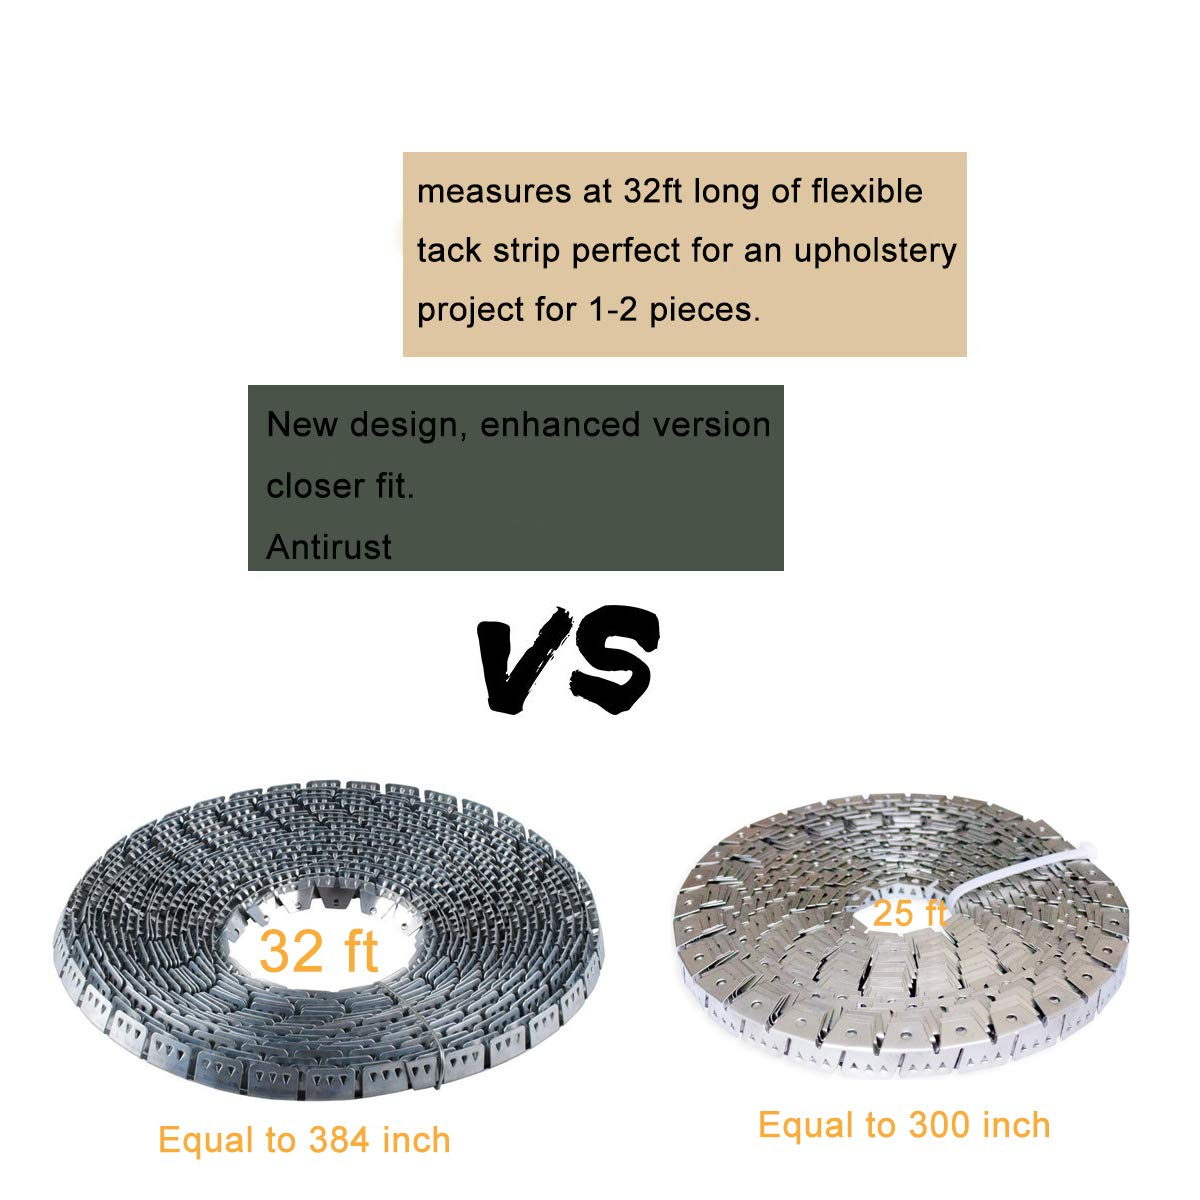 Flex-Grip, Curve Ease- 32 ft Flexible Metal Tack Strip Three-Tooth Upholstery by Wadoy (Image #5)